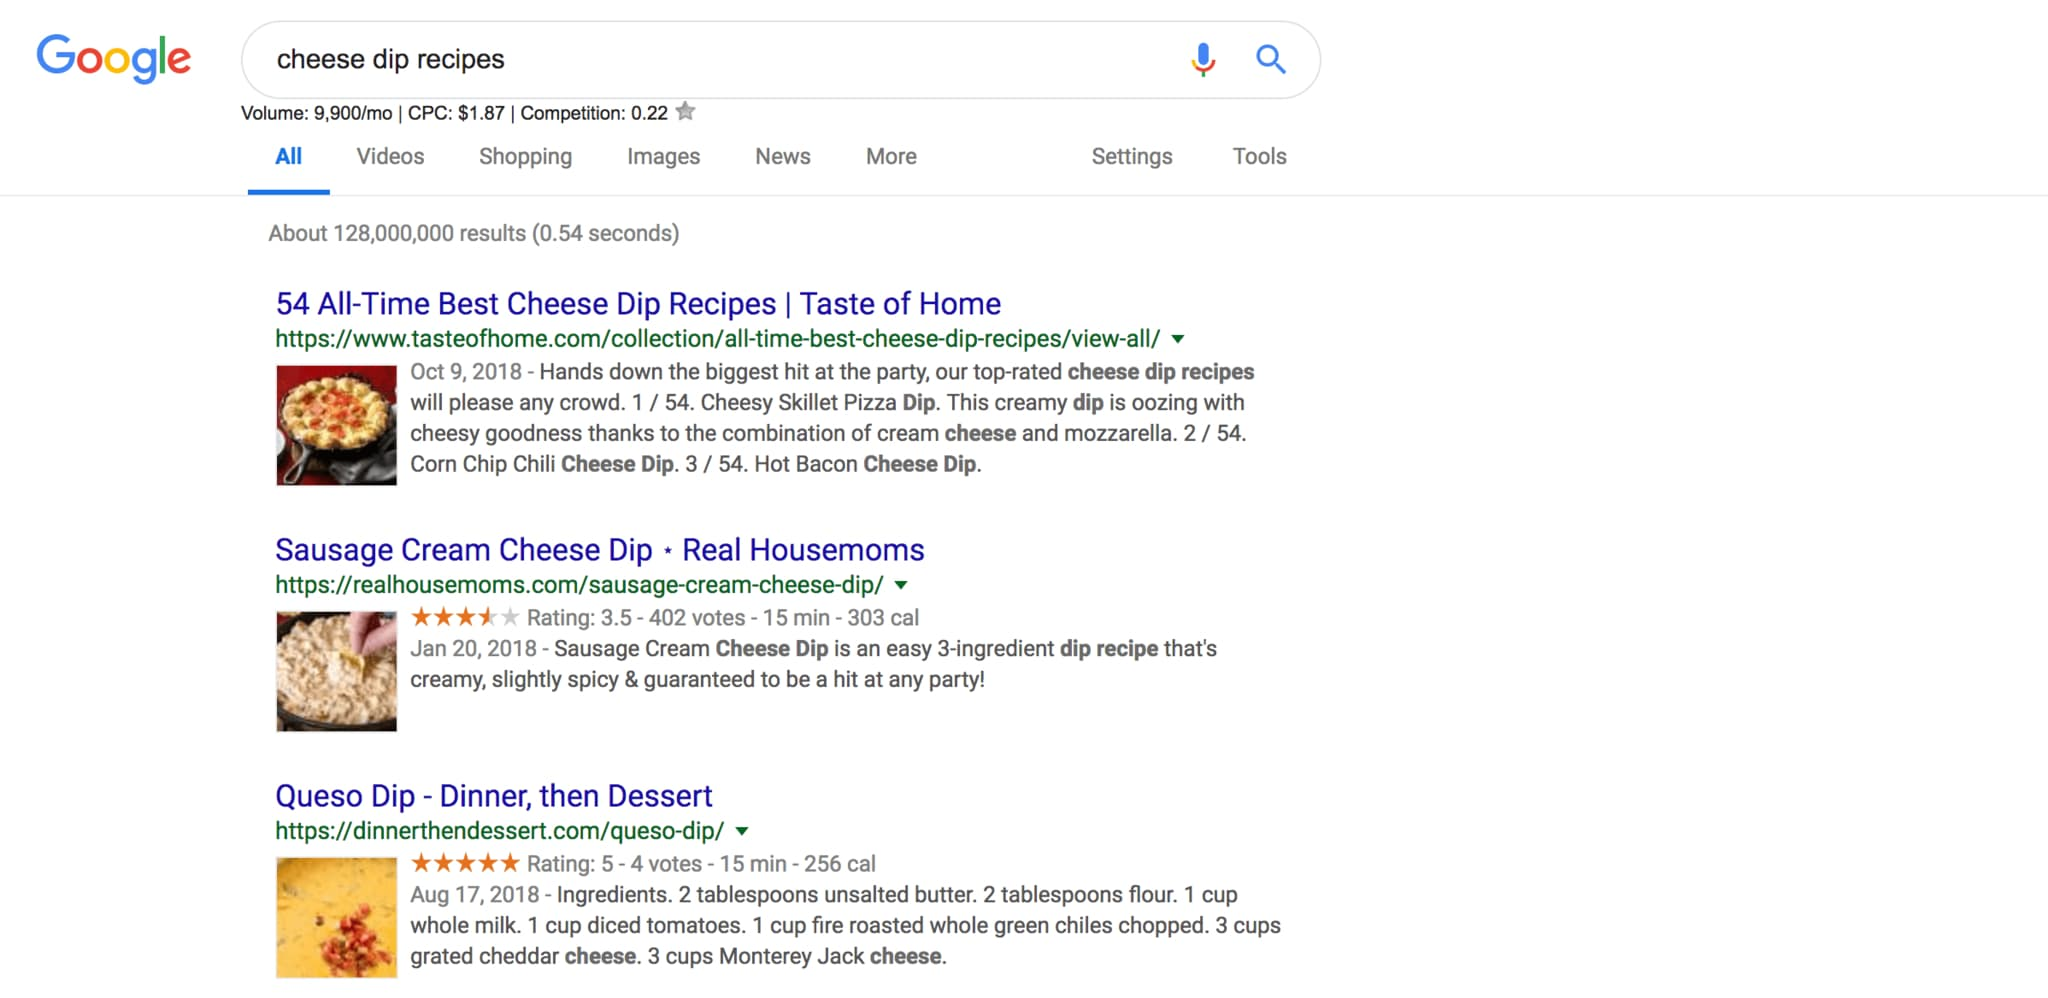 rich snippet about cheese dips in google SERPs